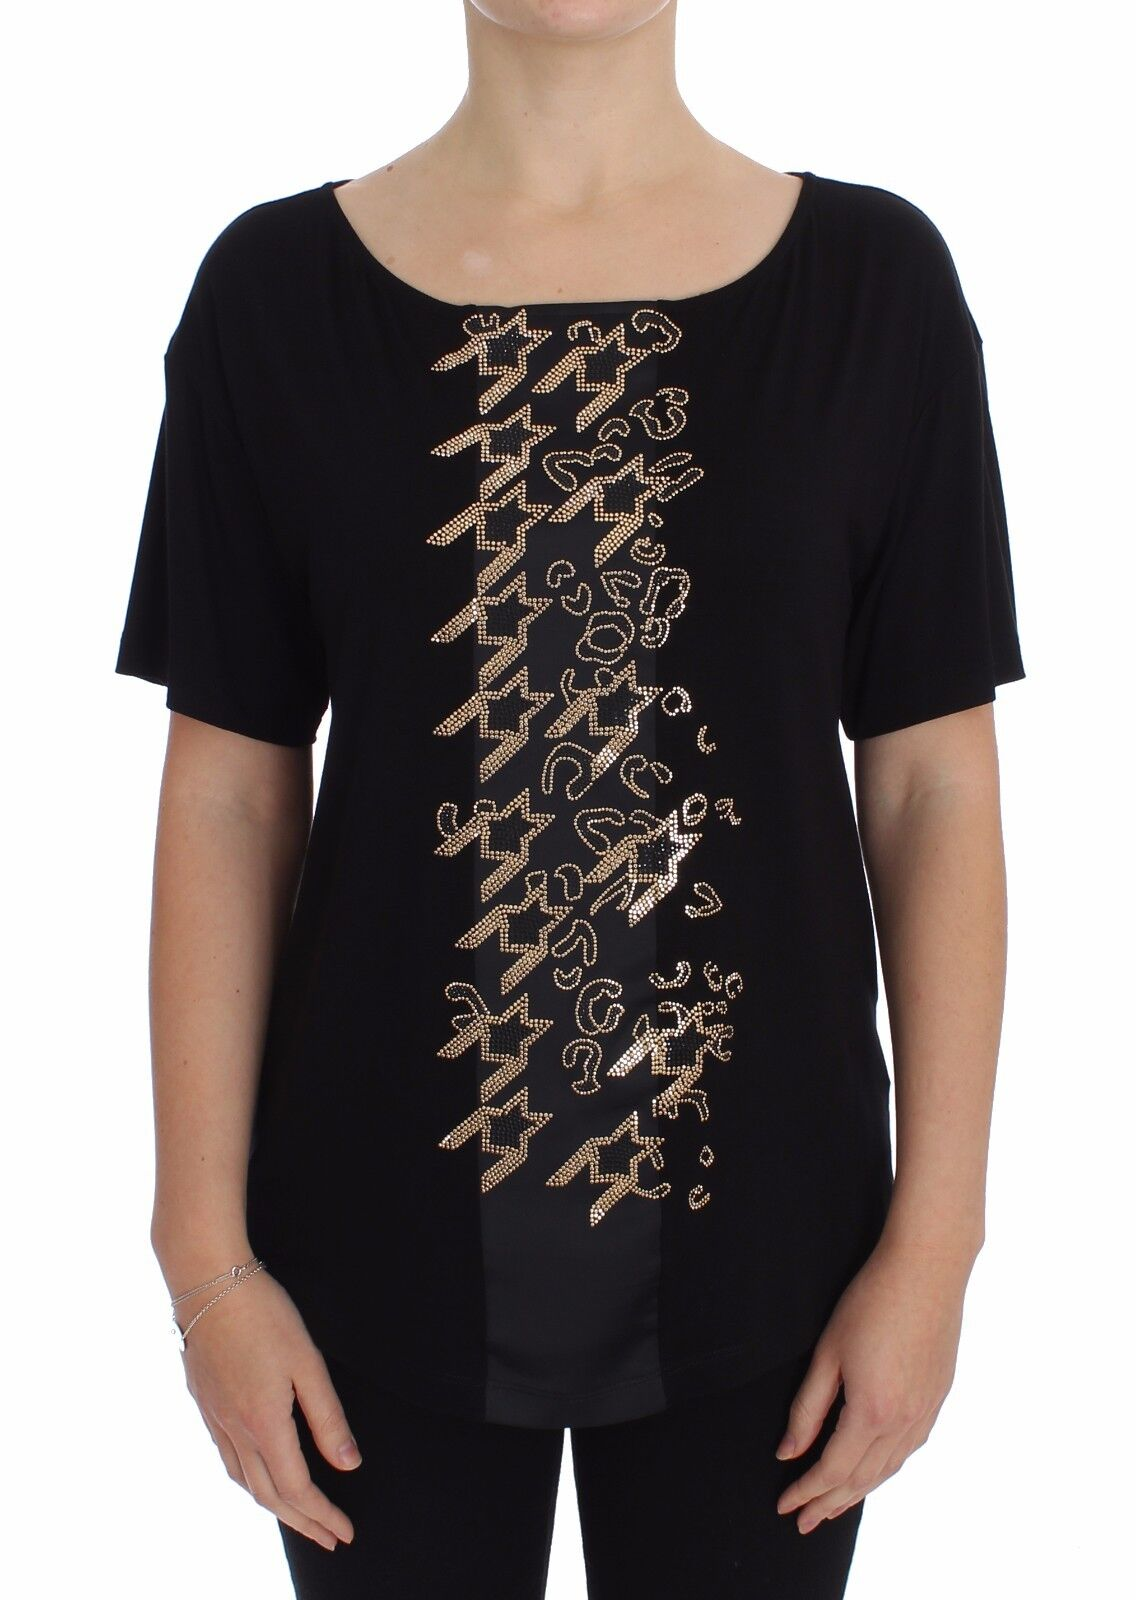 NWT VERSACE JEANS COUTURE VJC schwarz Gold Studded T-shirt Top s. IT42   US6